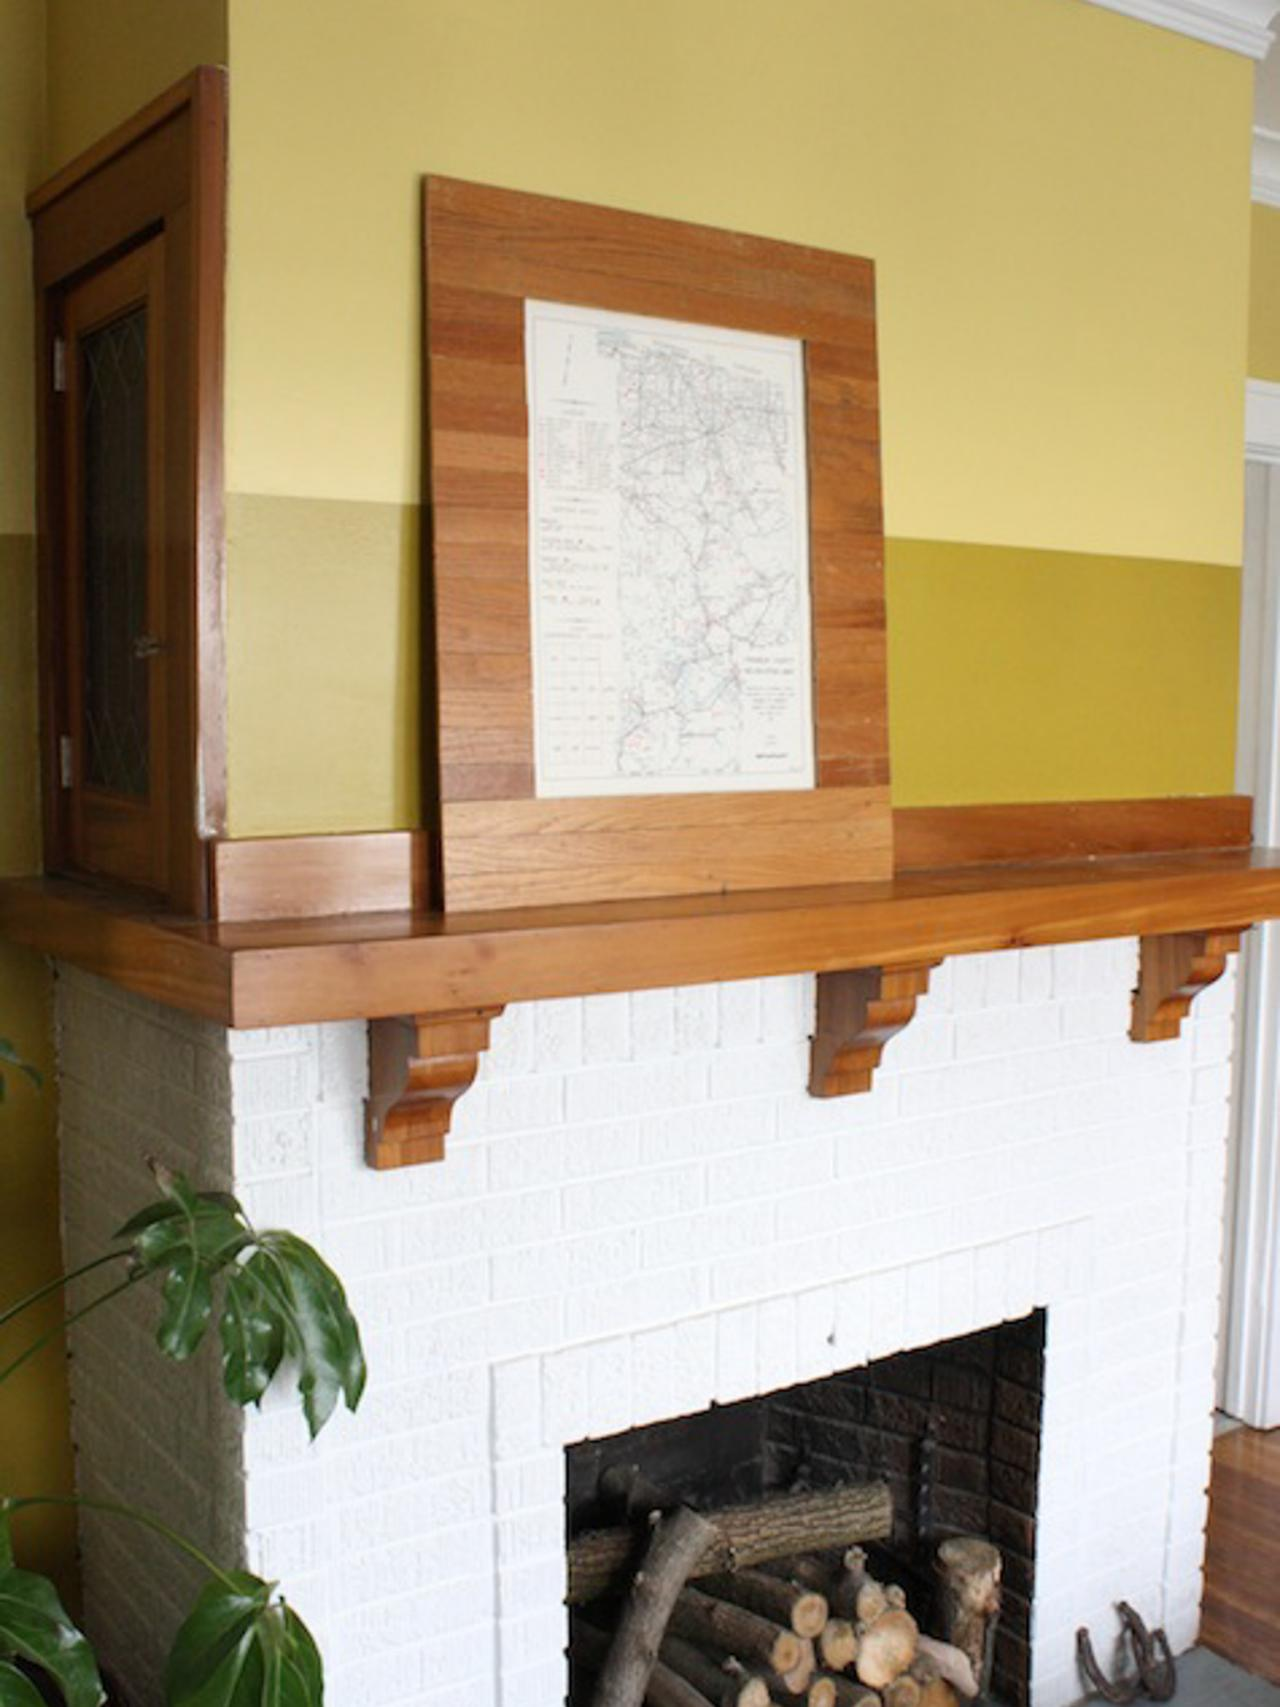 How to build a picture frame using reclaimed oak floorboards diy how to build a picture frame using reclaimed oak floorboards jeuxipadfo Image collections